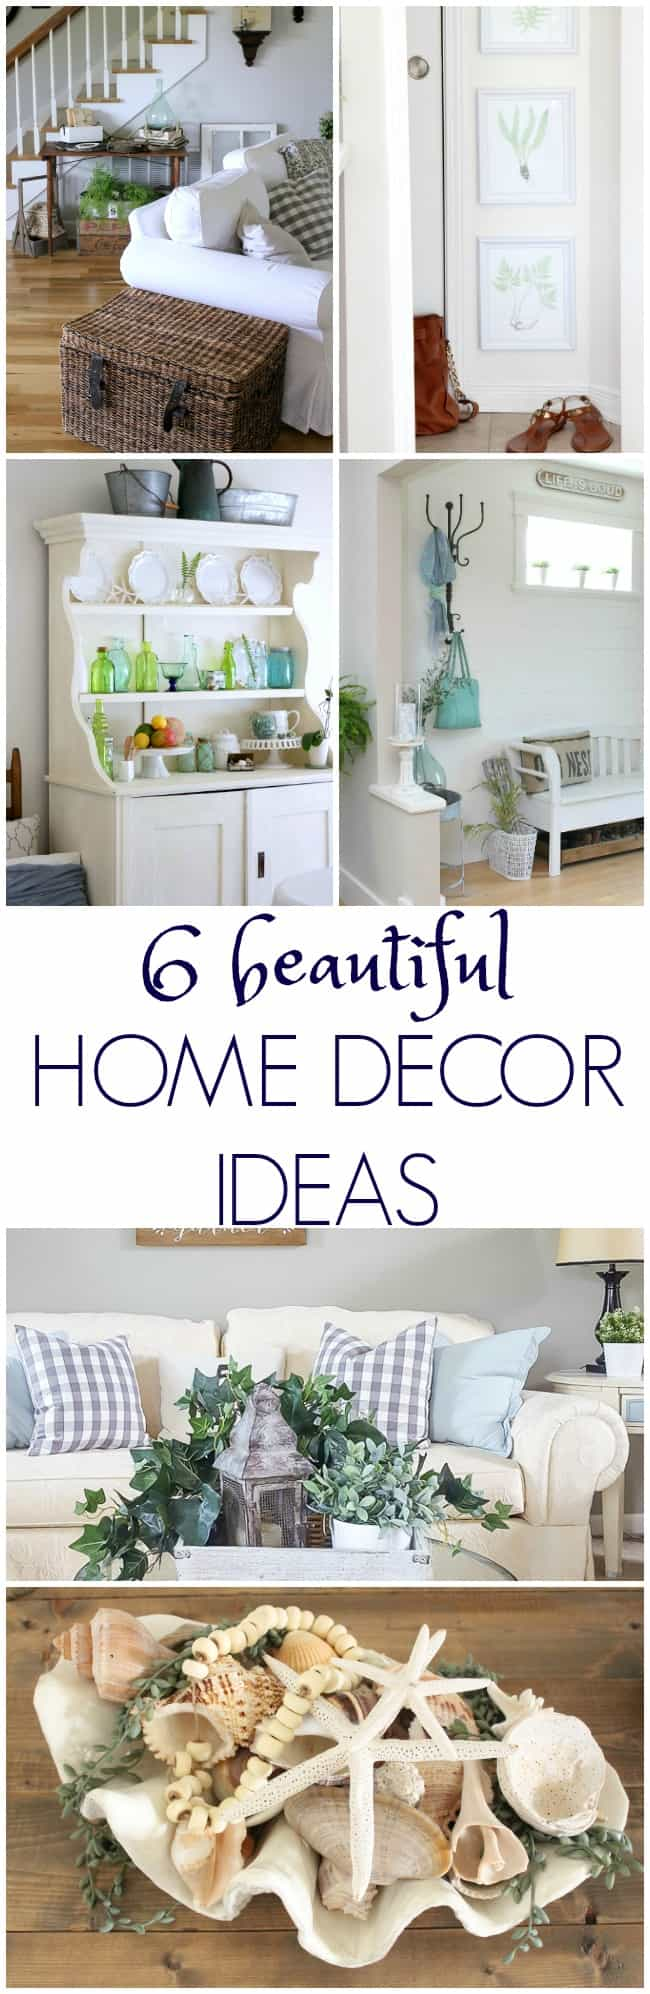 6 beautiful home decor ideas featured on Work It Wednesdays